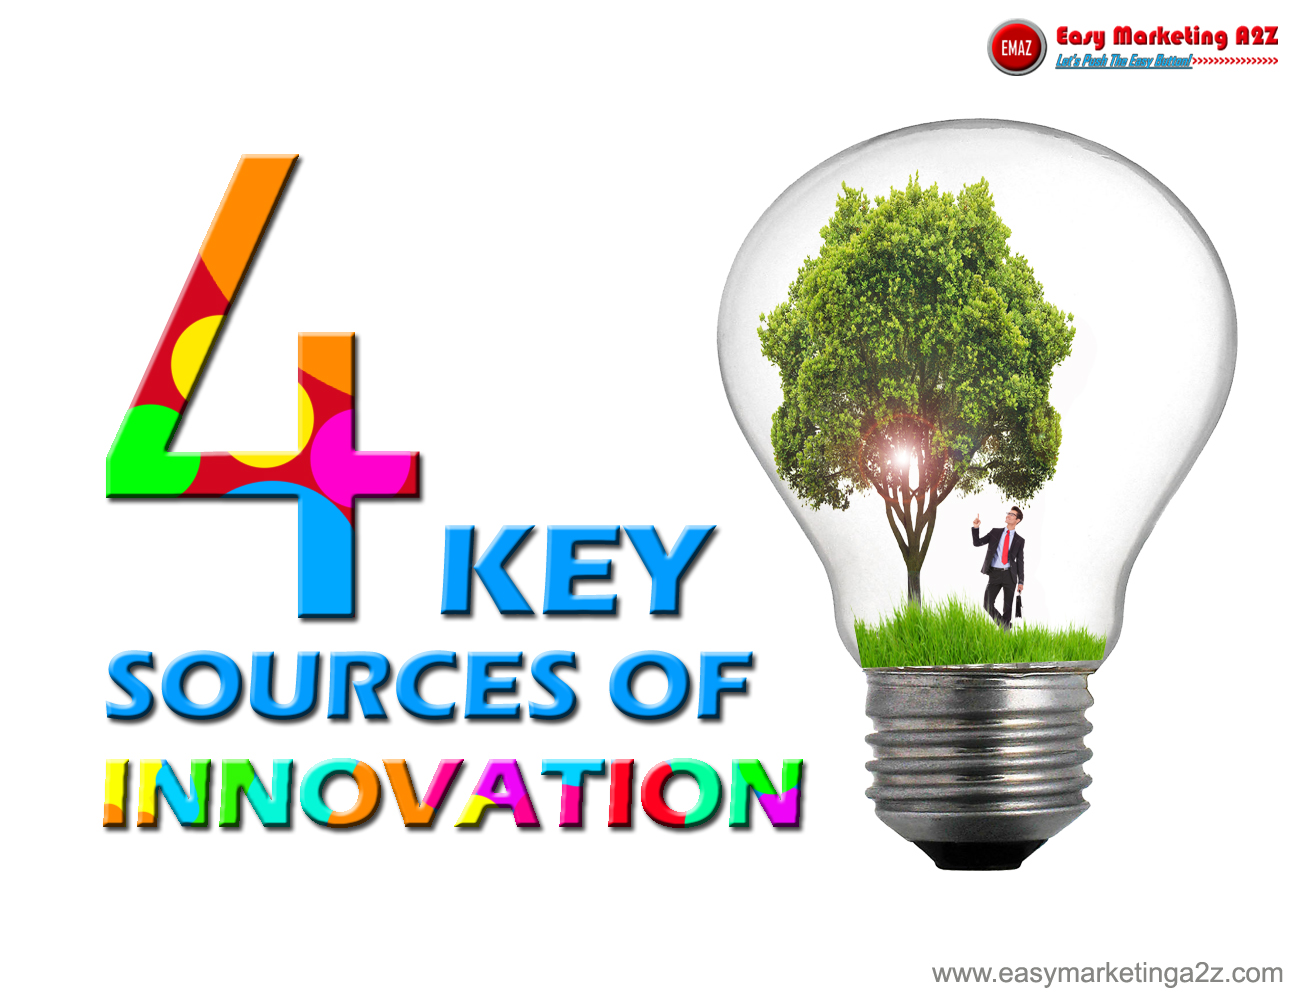 sources of innovation • industrial laboratories are generally seen as sources of incremental innovation rather  ff -jack m wilson distinguished professor sources of innovation - 13.